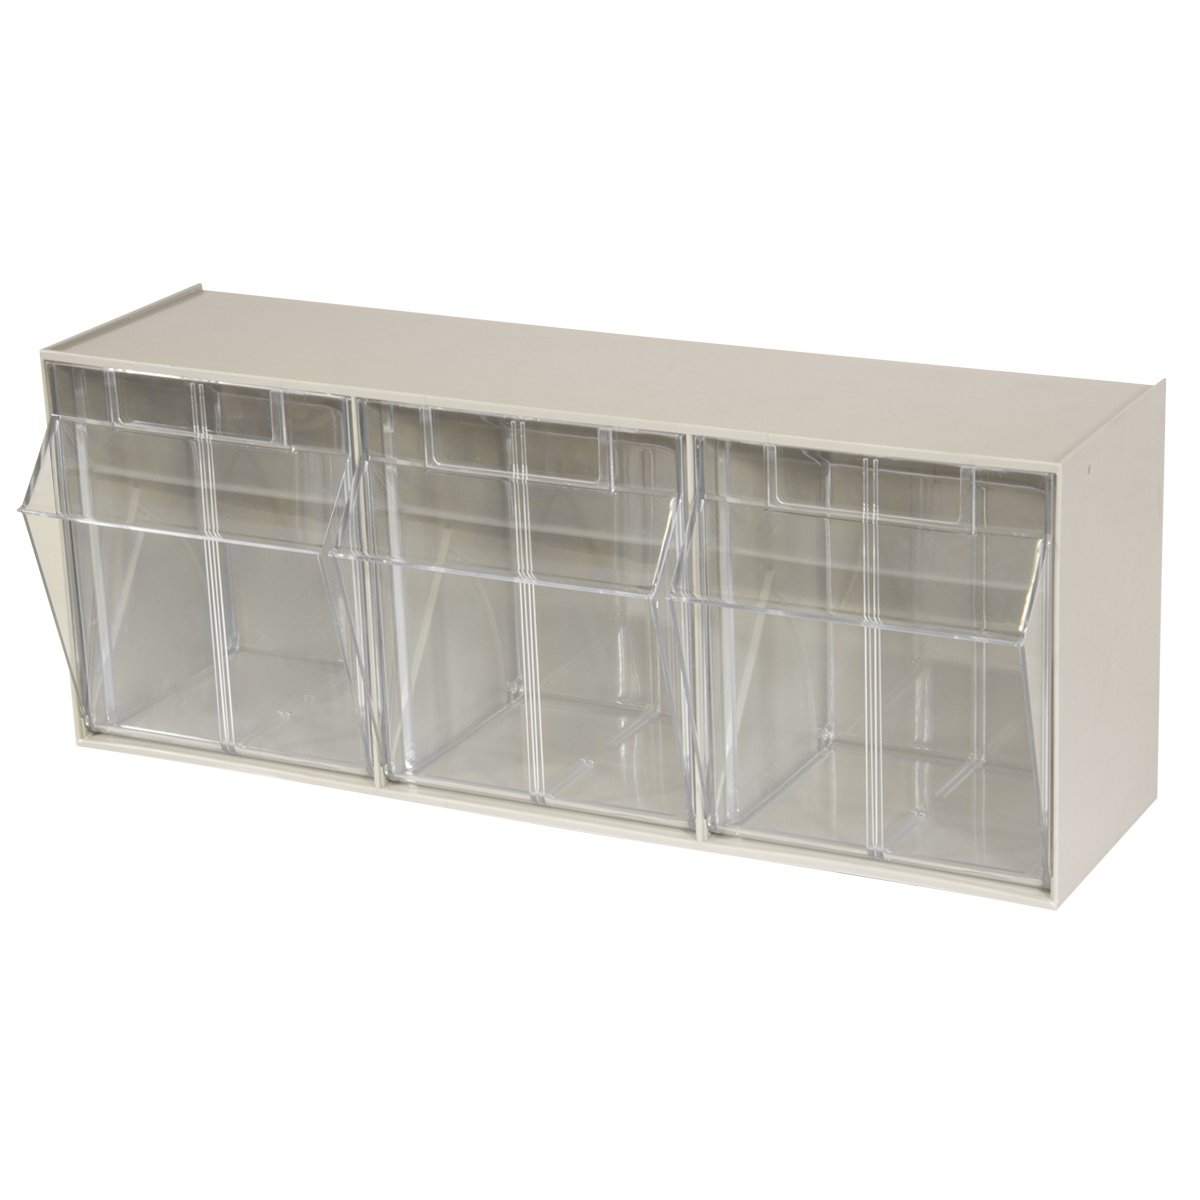 Akro-Mils 06703 TiltView Horizontal Plastic Storage System with Three Tilt Out Bins 23-5//8-Inch Wide by 9-7//16-Inch High by 7-7//8-Inch Deep Stone